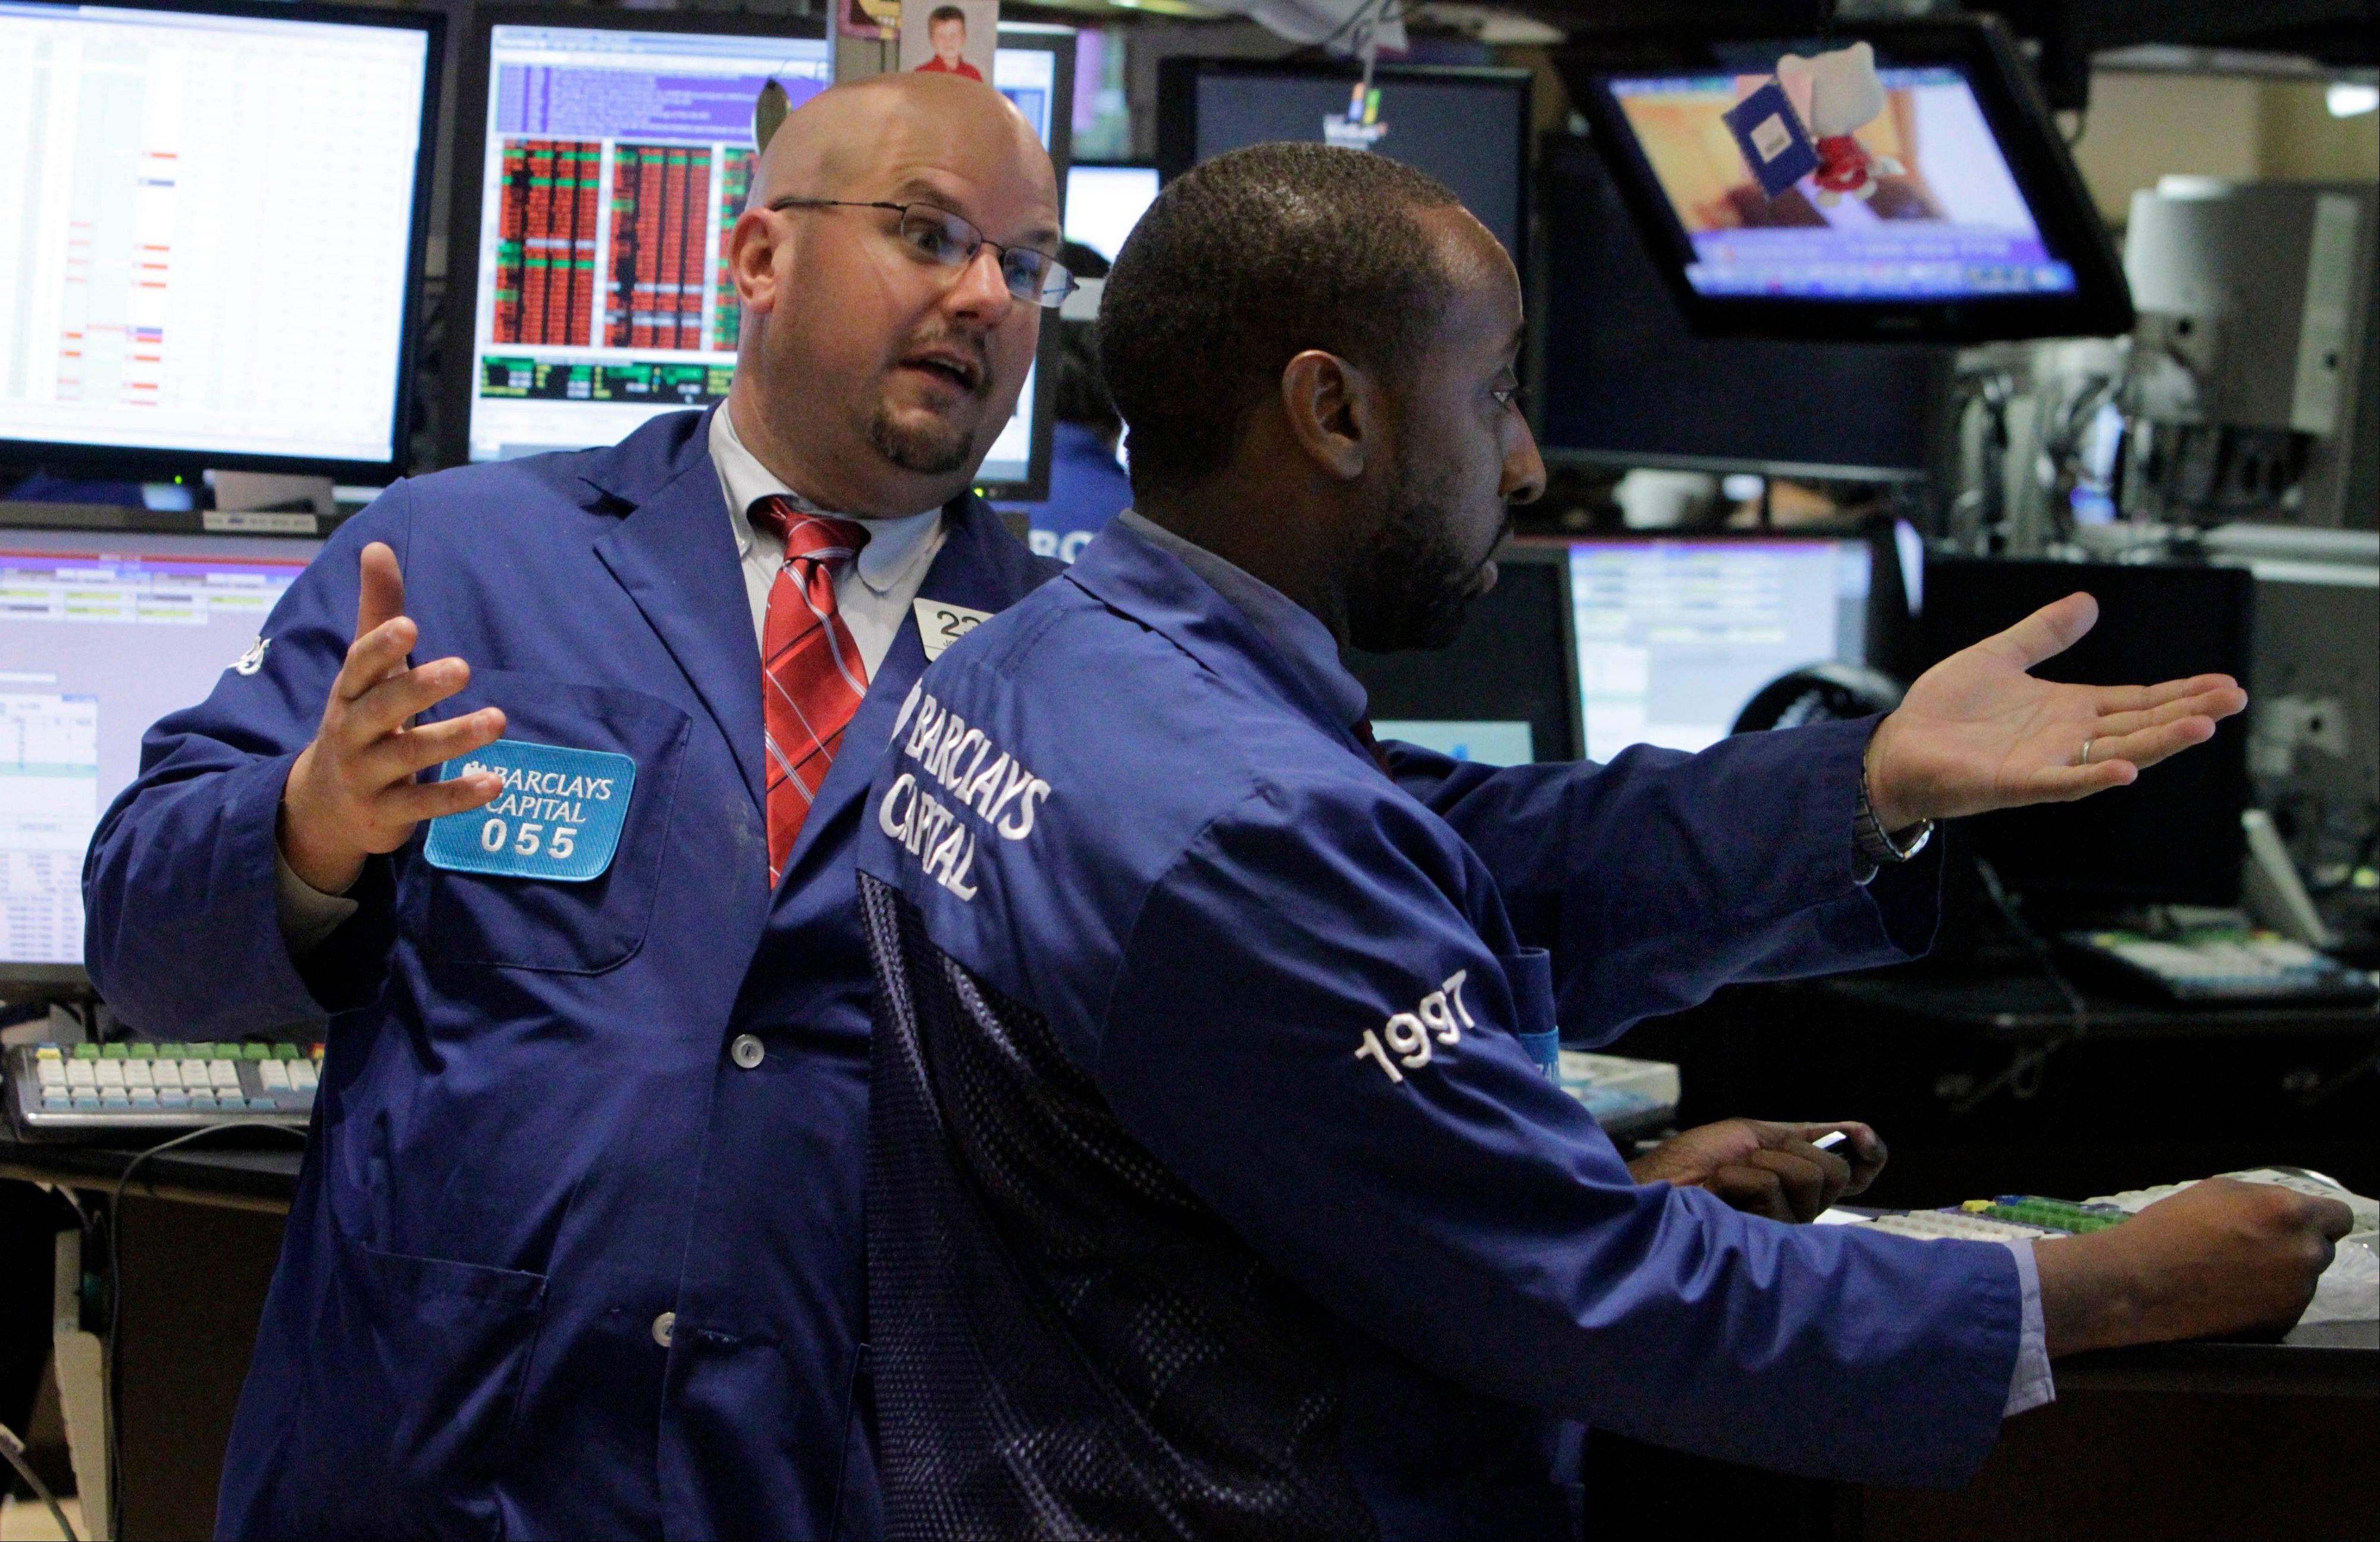 ASSOCIATED PRESS U.S. stocks fell, with benchmark indexes retreating from record highs, as concern grew that the Federal Reserve will scale back its stimulus efforts if the labor market continues to improve.